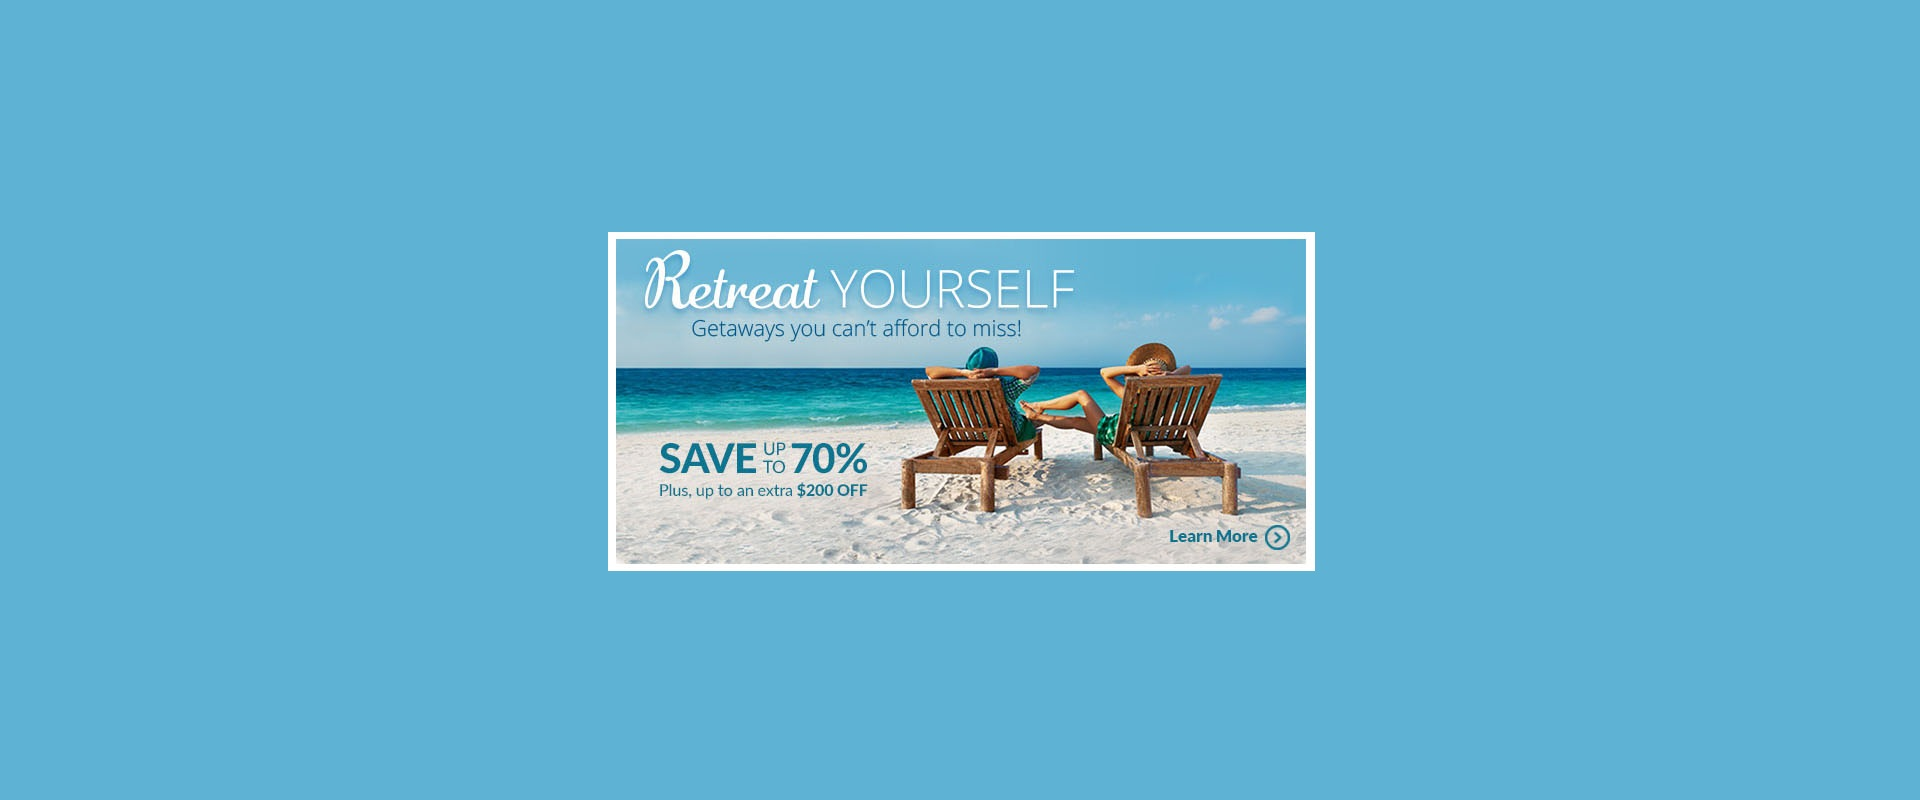 Retreat-Yourself-Banner